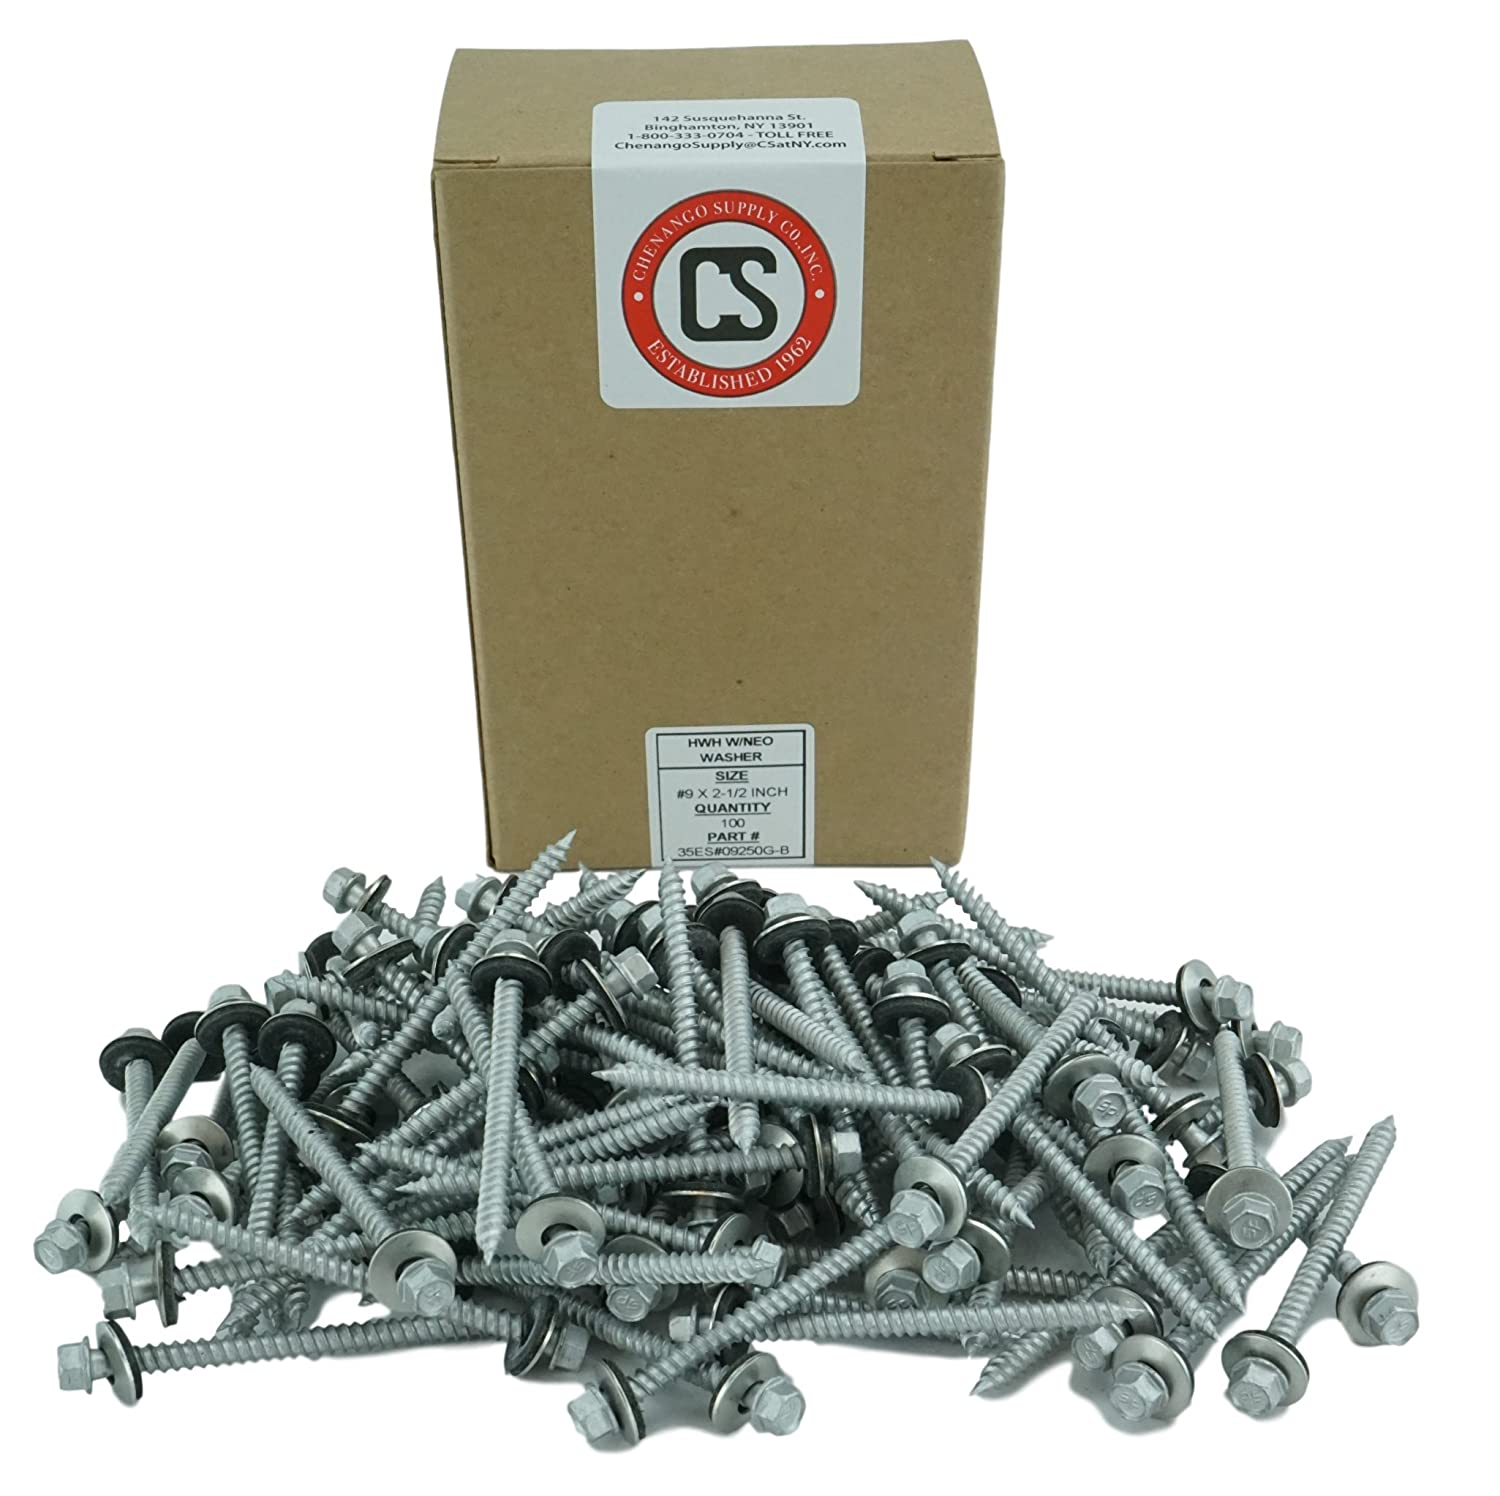 siding Screws with EPDM Washer Seal.100 PCS Sheet Metal Roofing Self Starting//self Tapping Metal to Wood #10 x 3 Hex Washer Head Metal Roof Screw. #10 x 3 Multiple Sizes in Listing